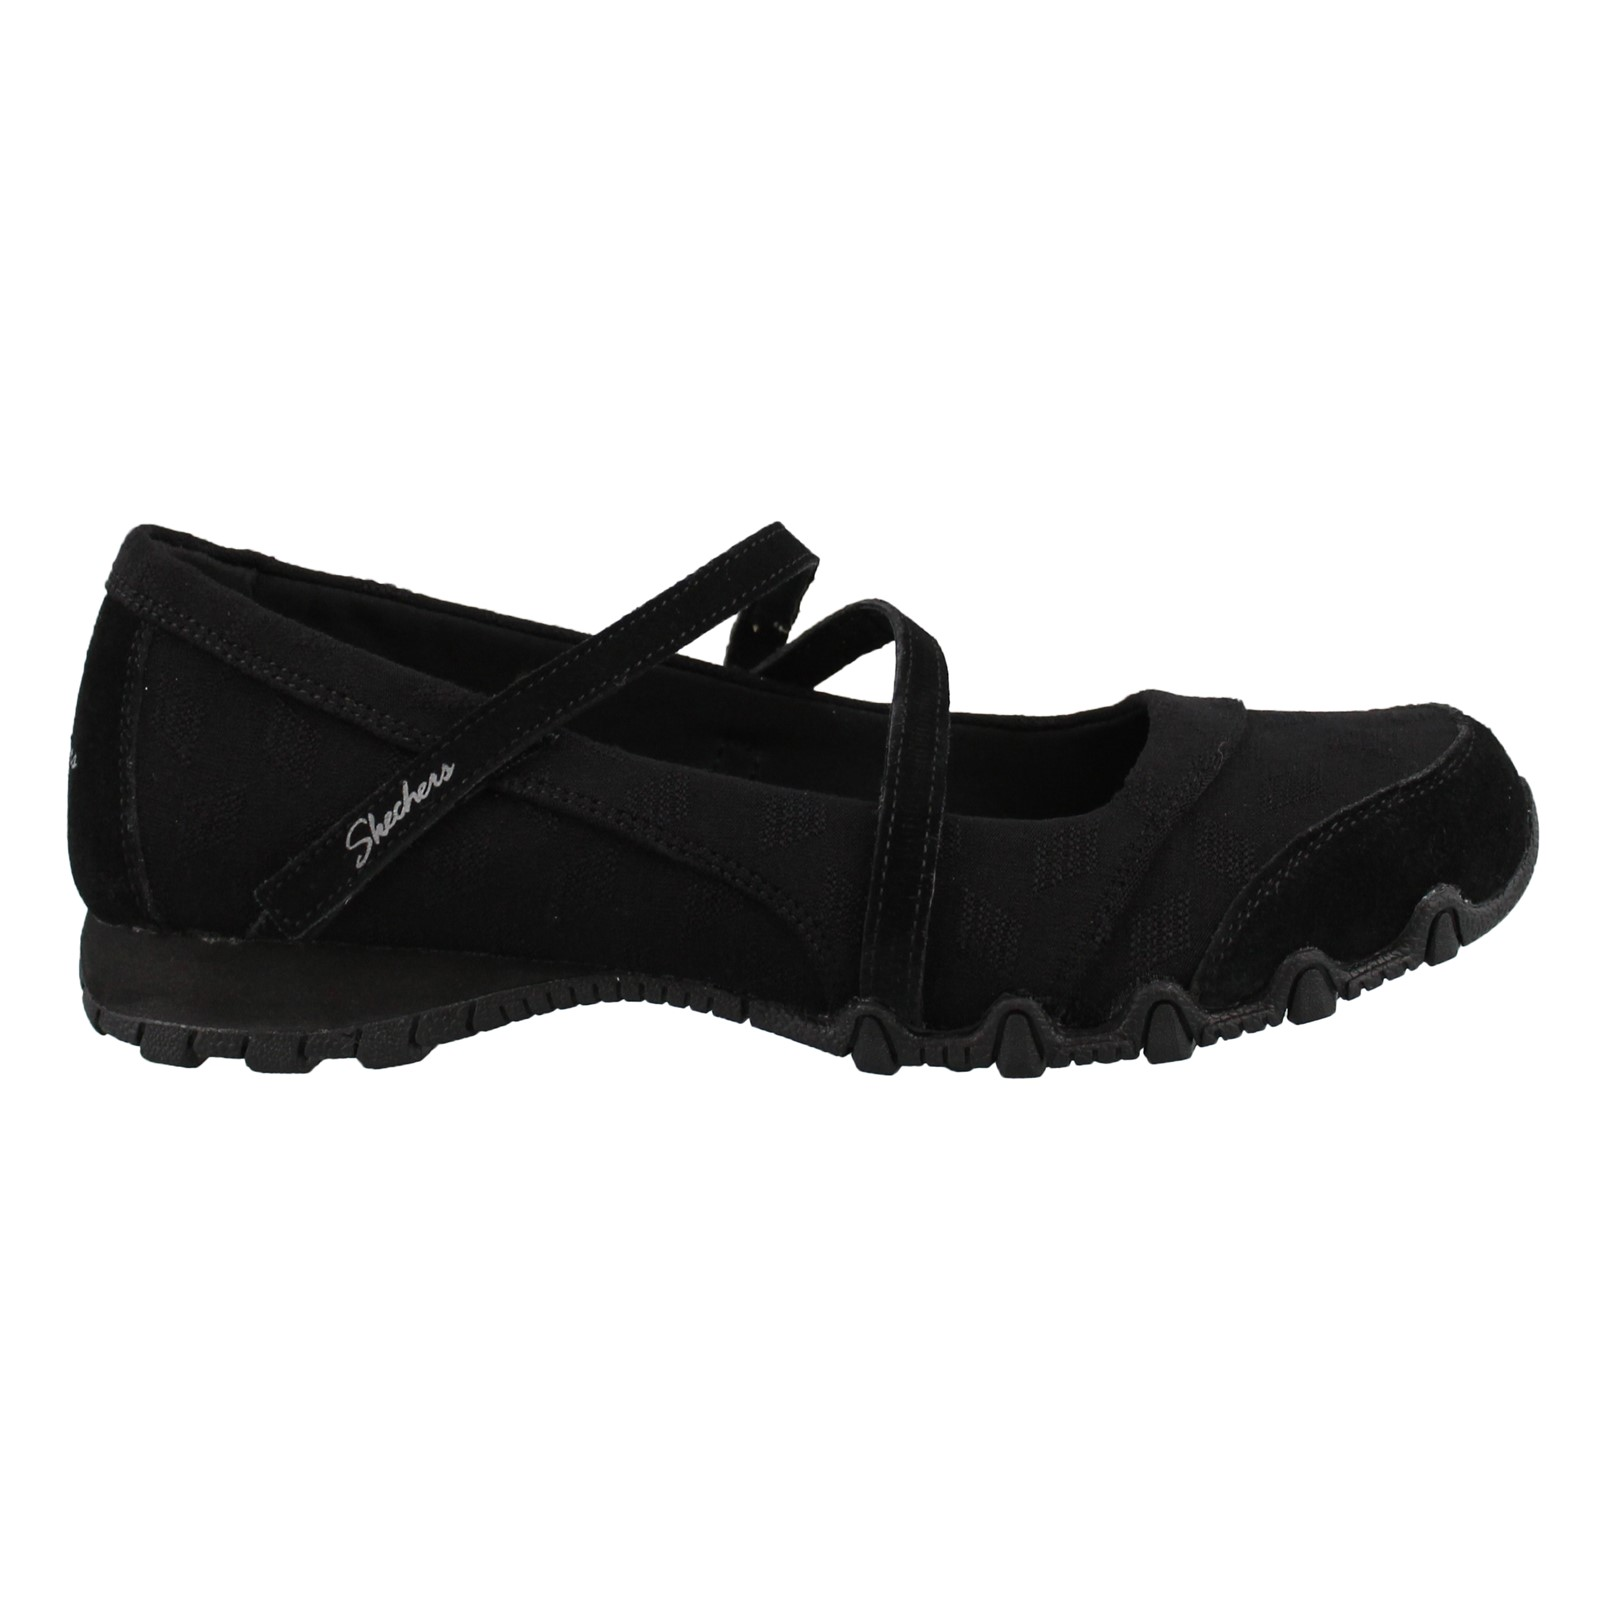 Women's Skechers, Bikers Get Up Slip on Shoes